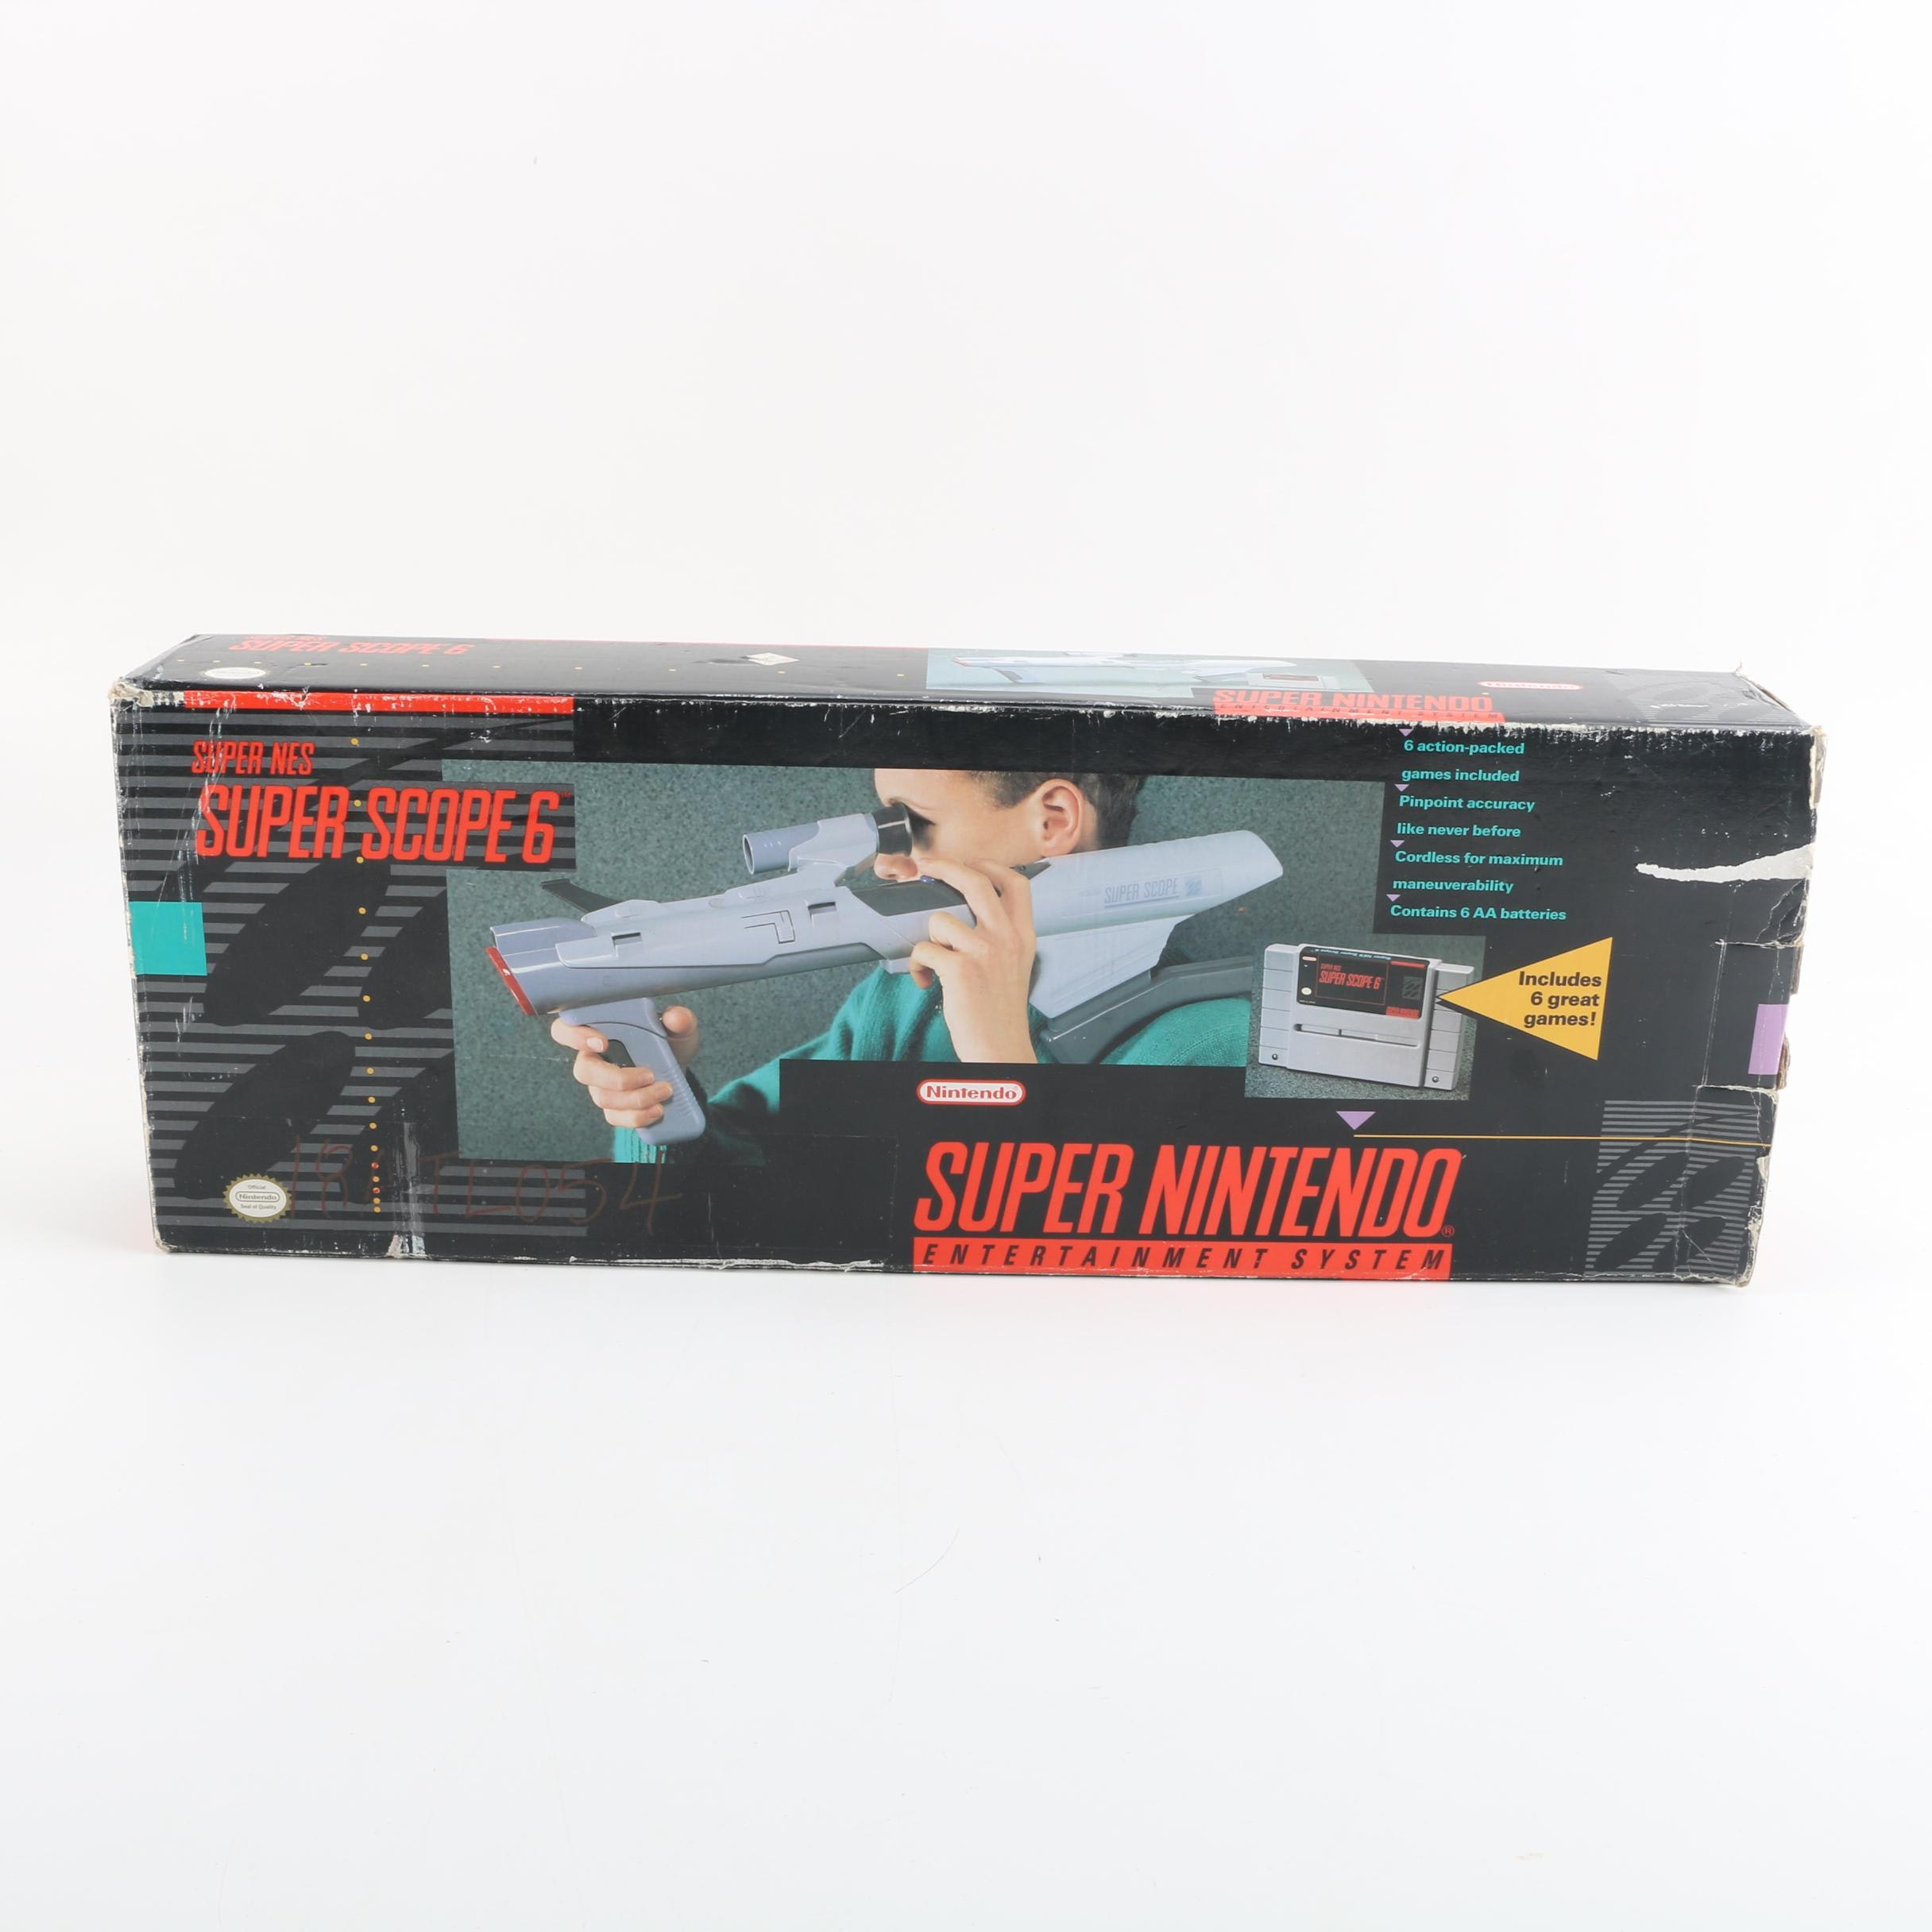 Super Nintendo Super Scope 6